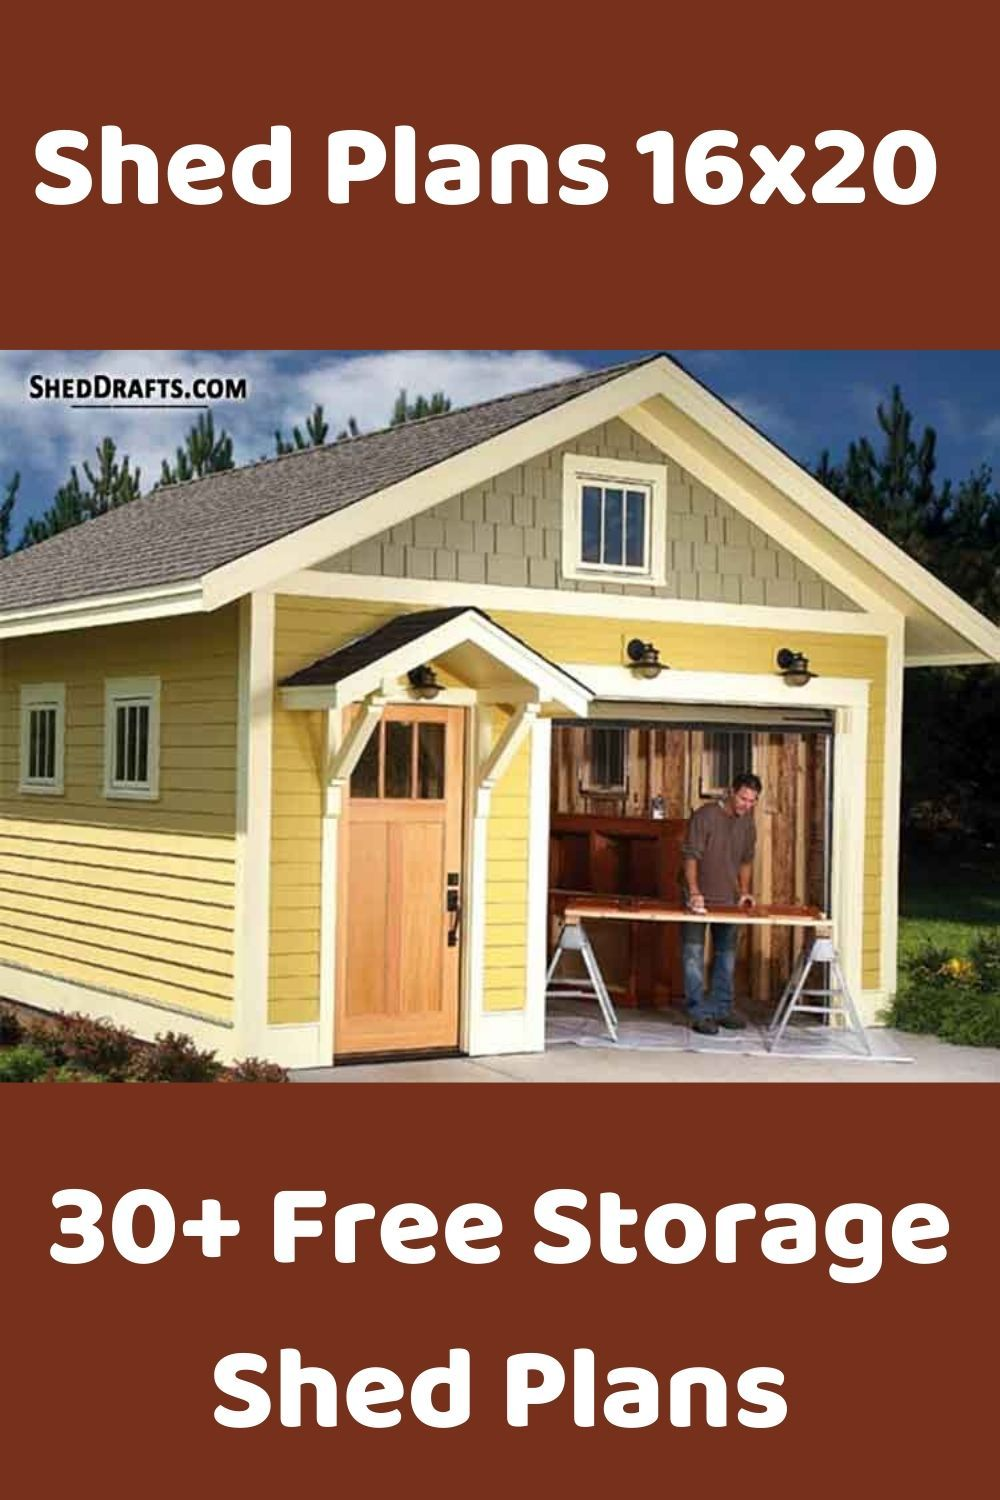 16x20 Diy Storage Shed Plans How To Build Roof Trusses For A 16x20 Shed In 2020 Diy Storage Shed Plans Shed Plans Shed